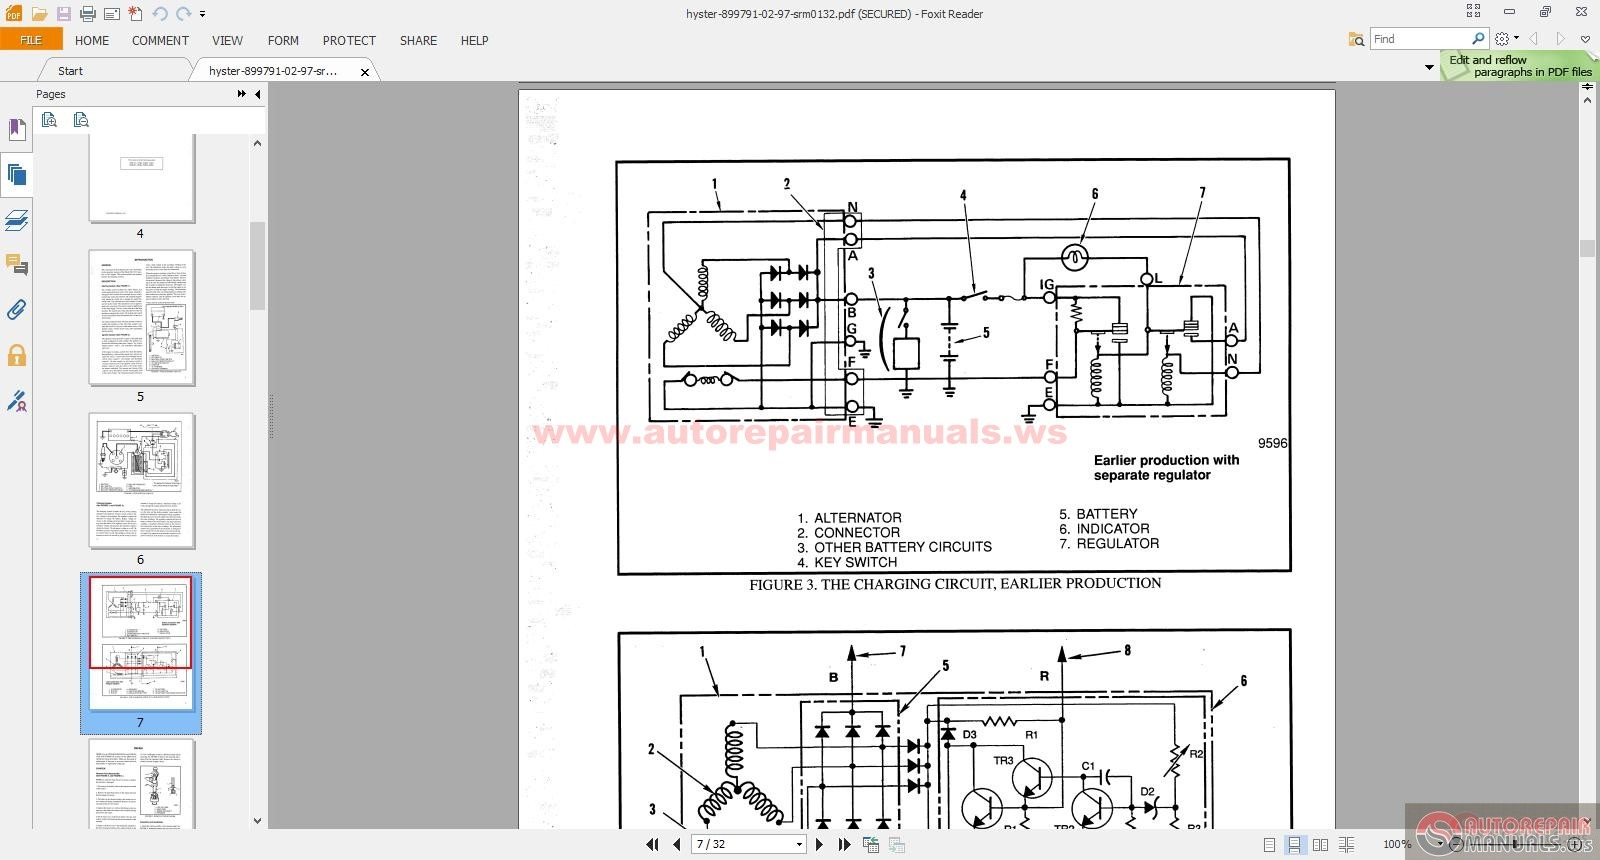 Toyota Lift Truck Wiring Diagram Glastron Cat Fork Ignition Switch Wire Massey Ferguson 65 Boss Hyster Forklift Parts And Service